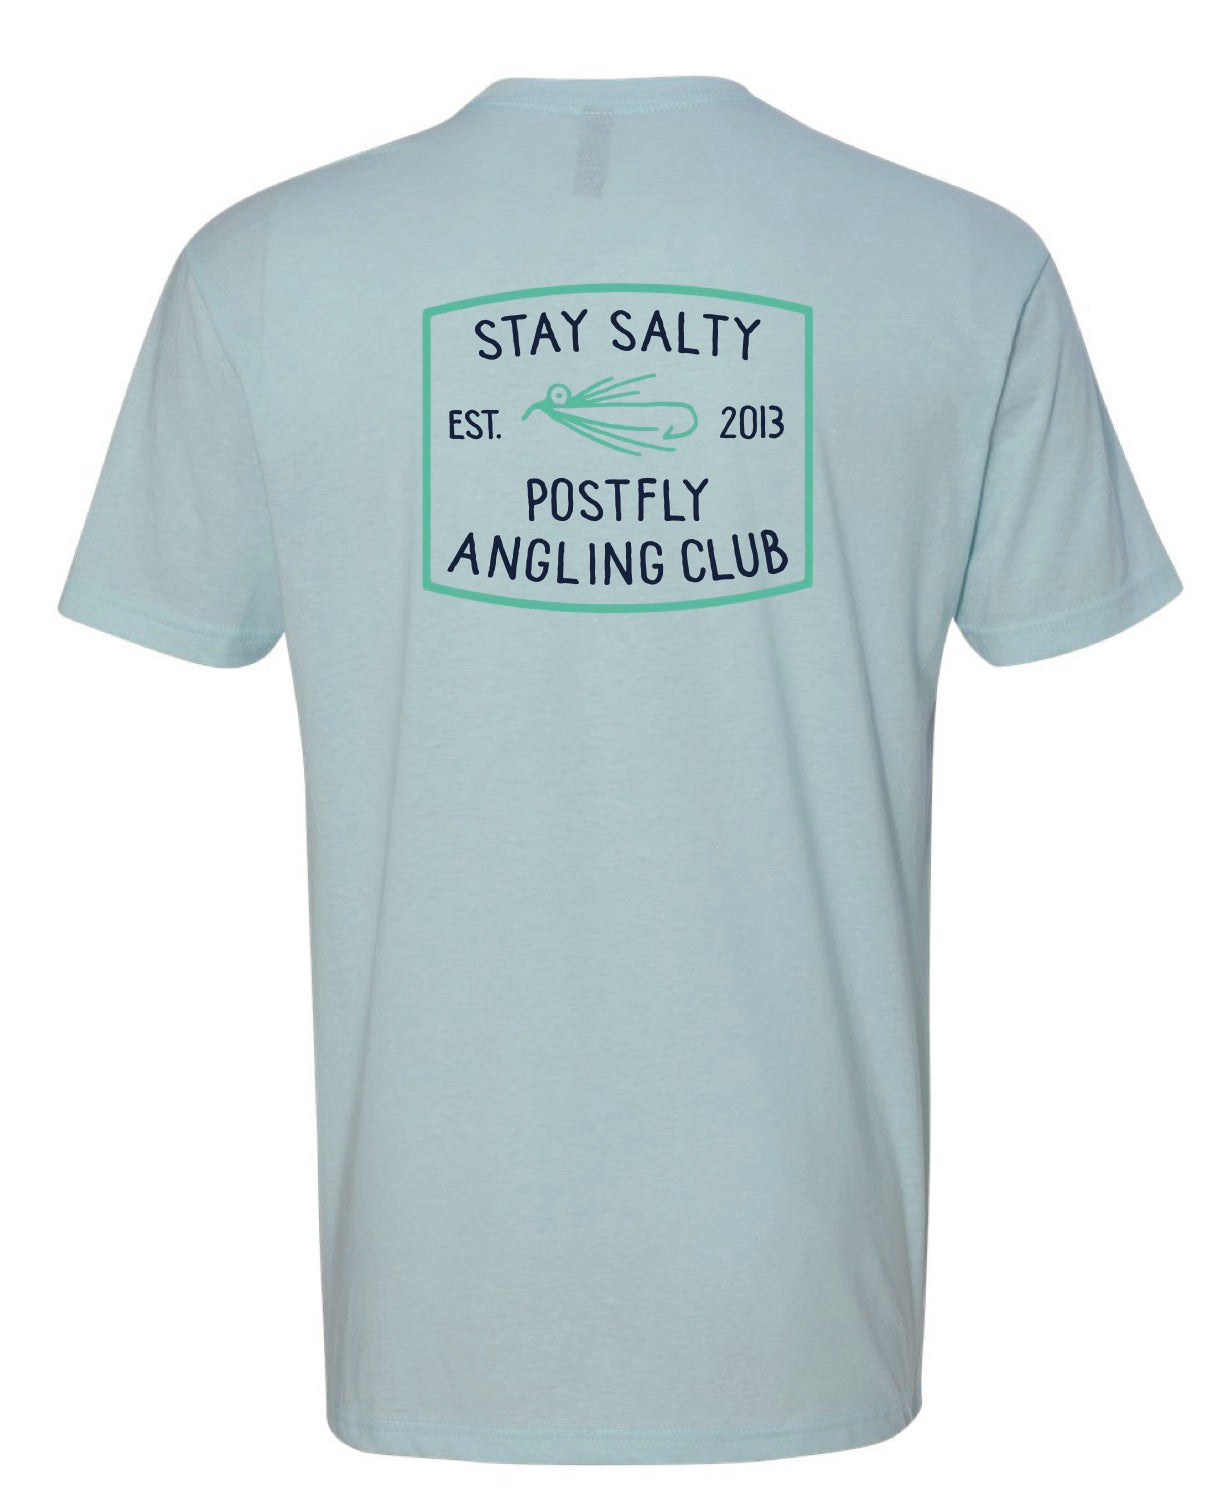 The Salty Angler's Club